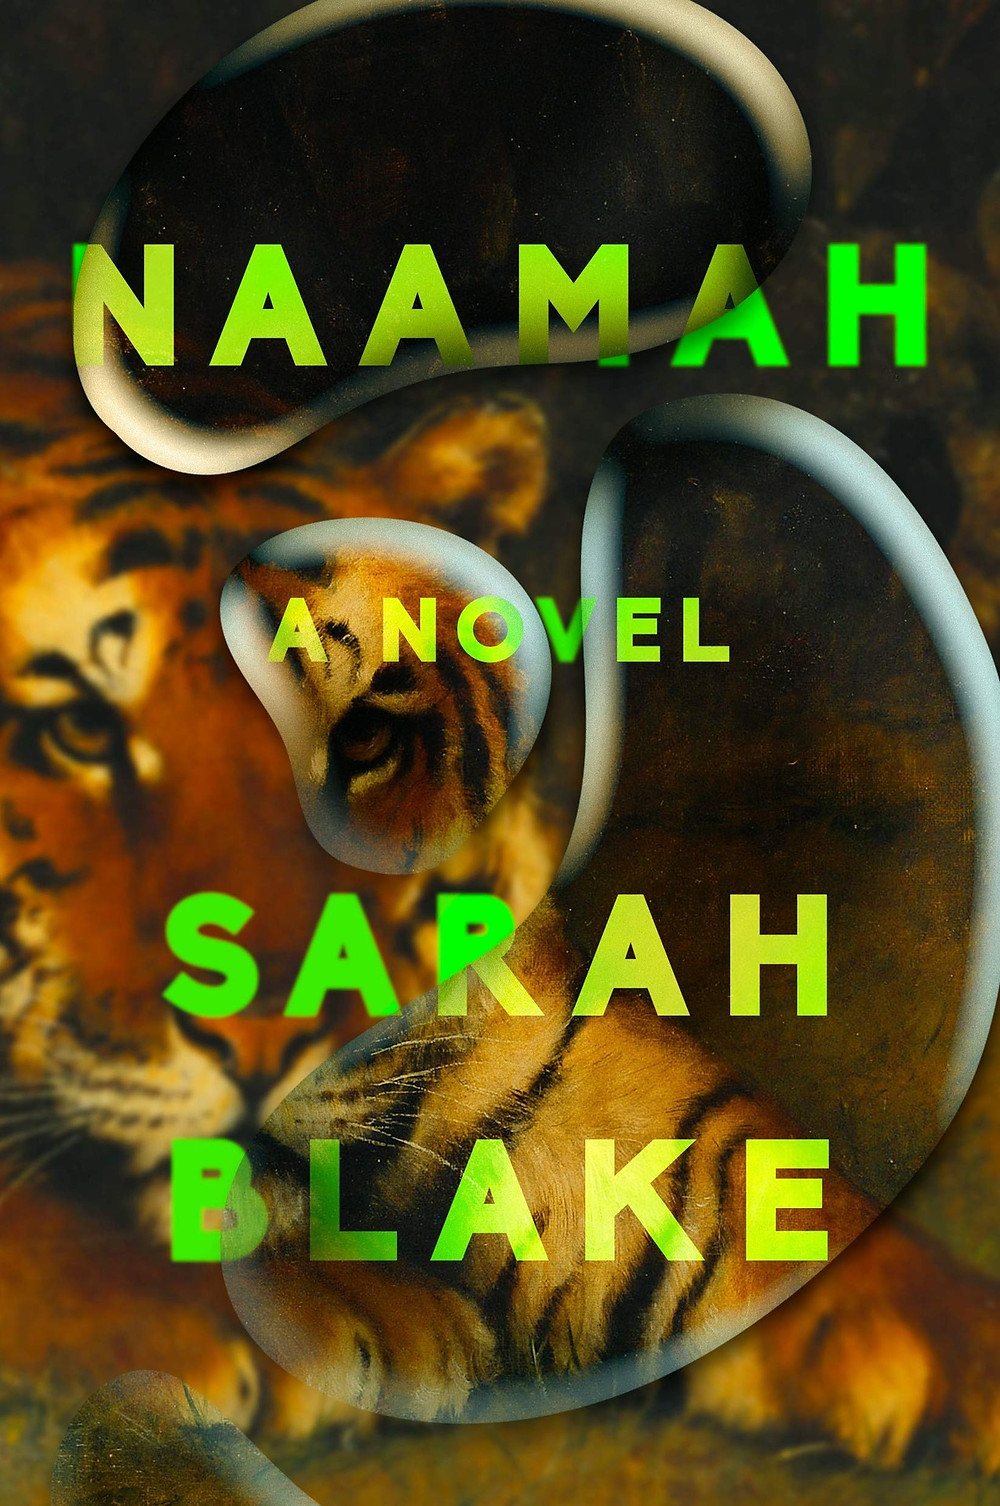 Naamah By Sarah Blake 306 pages. 2019. tiger book cover neon green font writing thebookslut book reviews the book slut